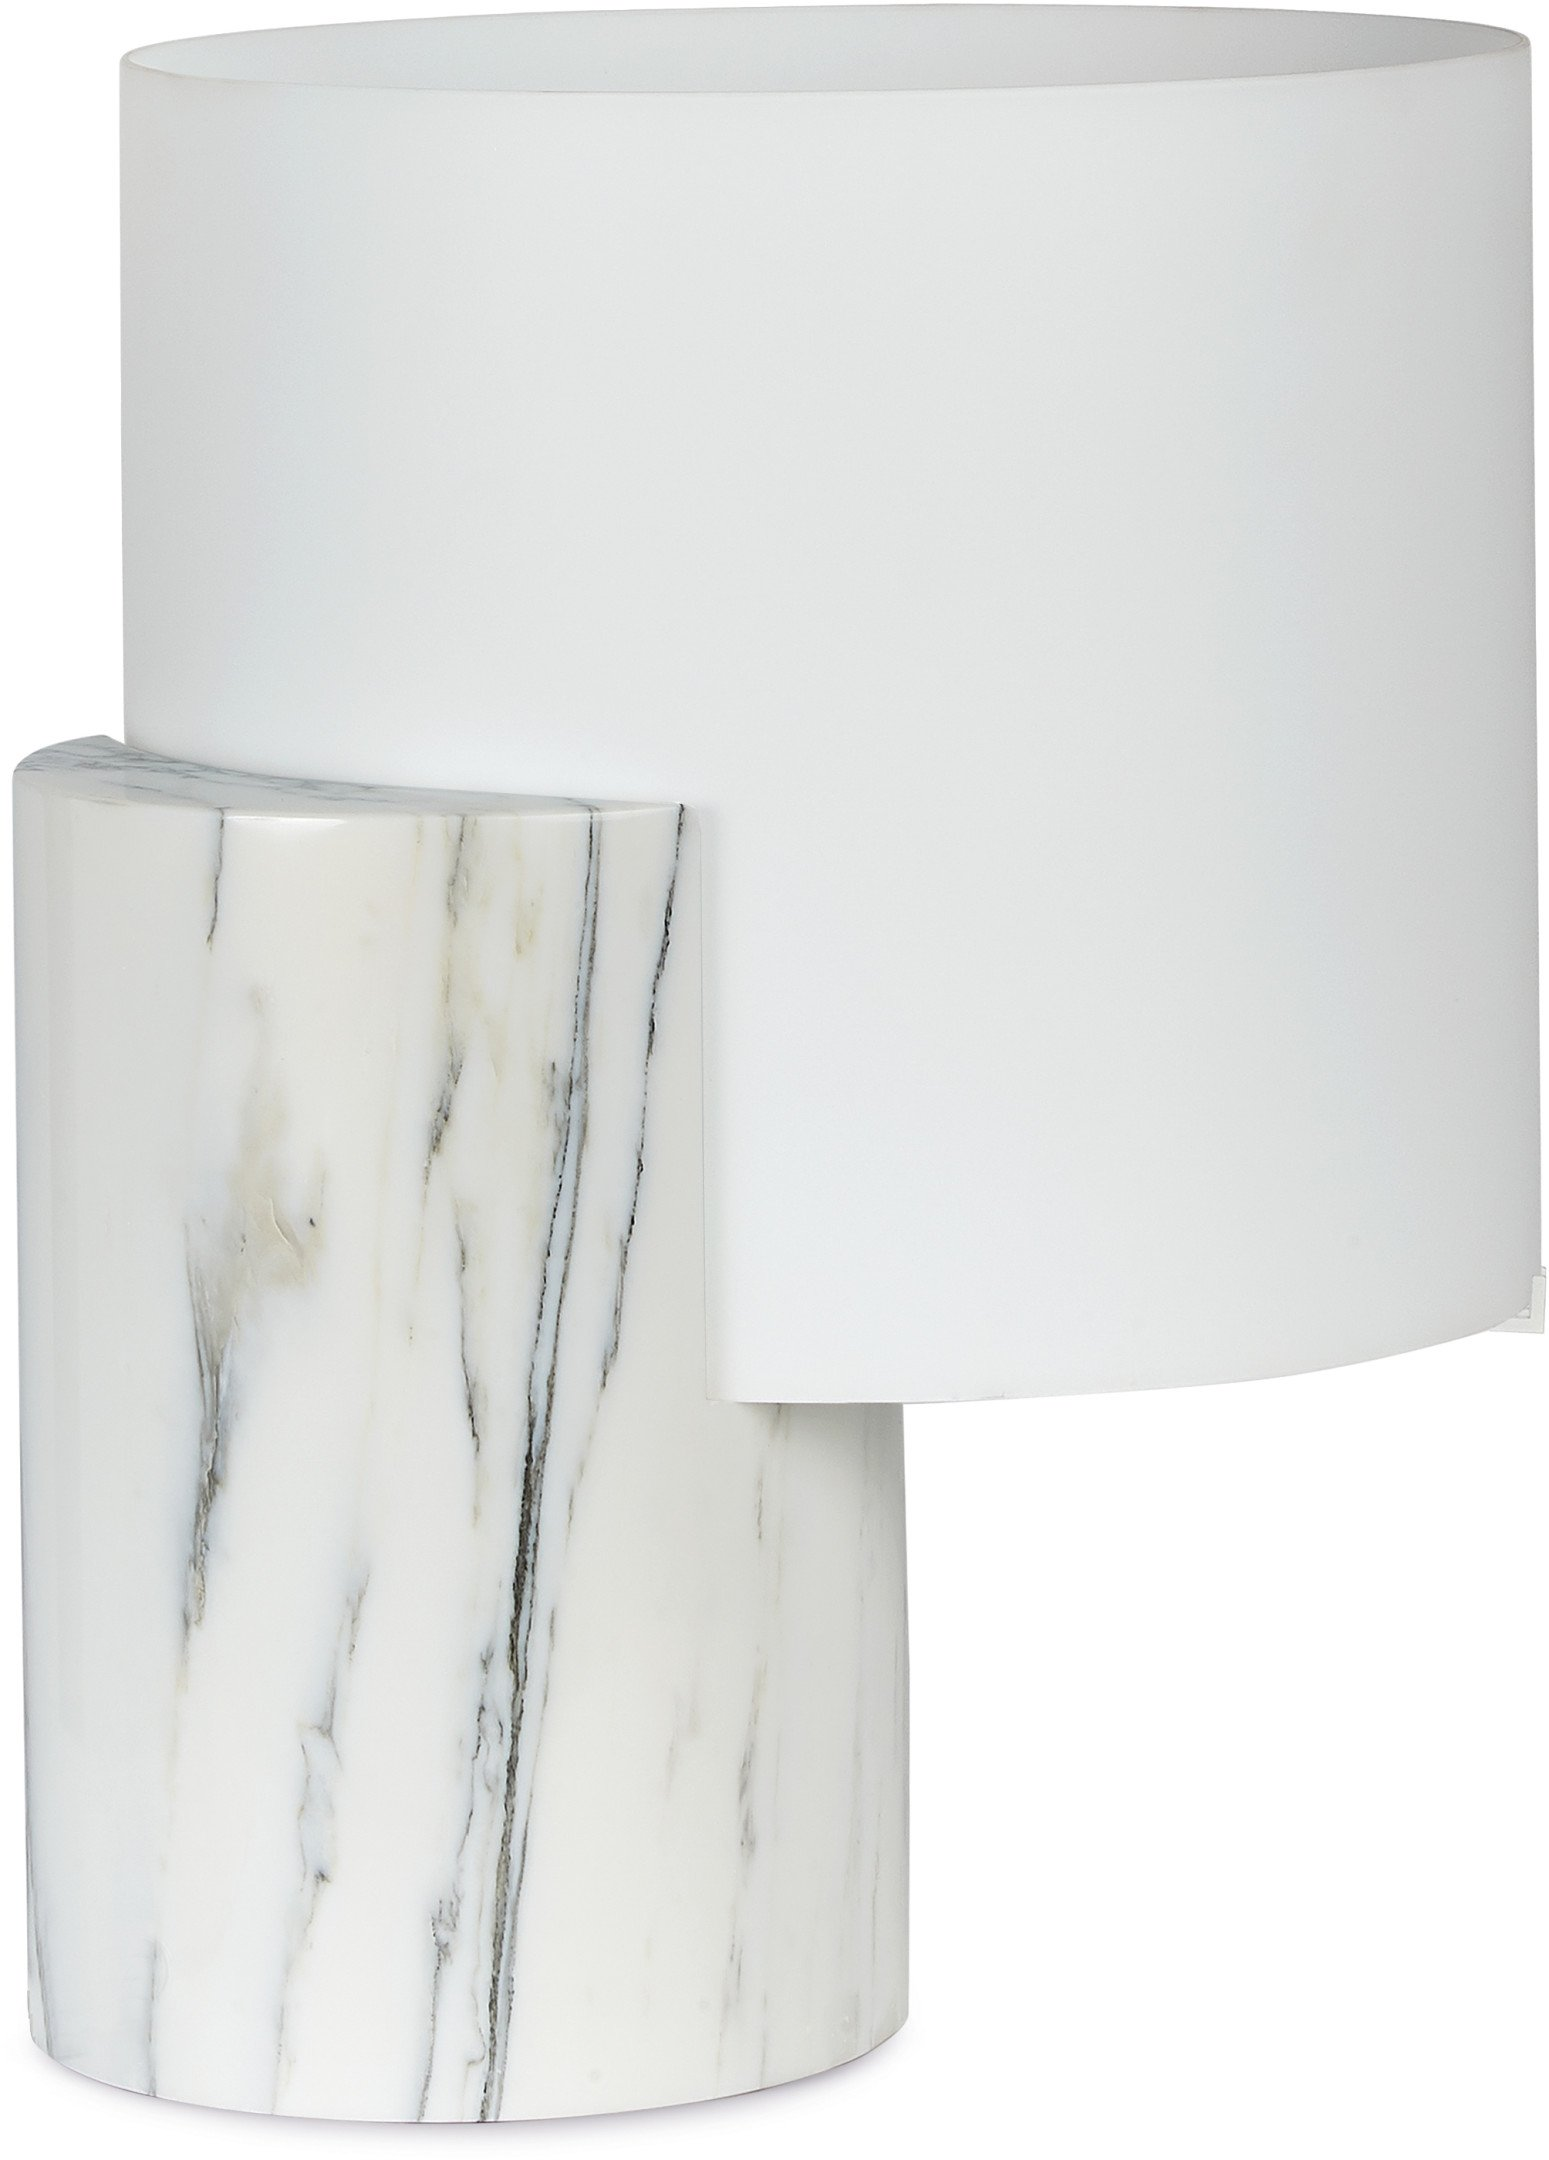 Carrara Marble Lea Table Lamp by M. Nunziati for Tato Italia